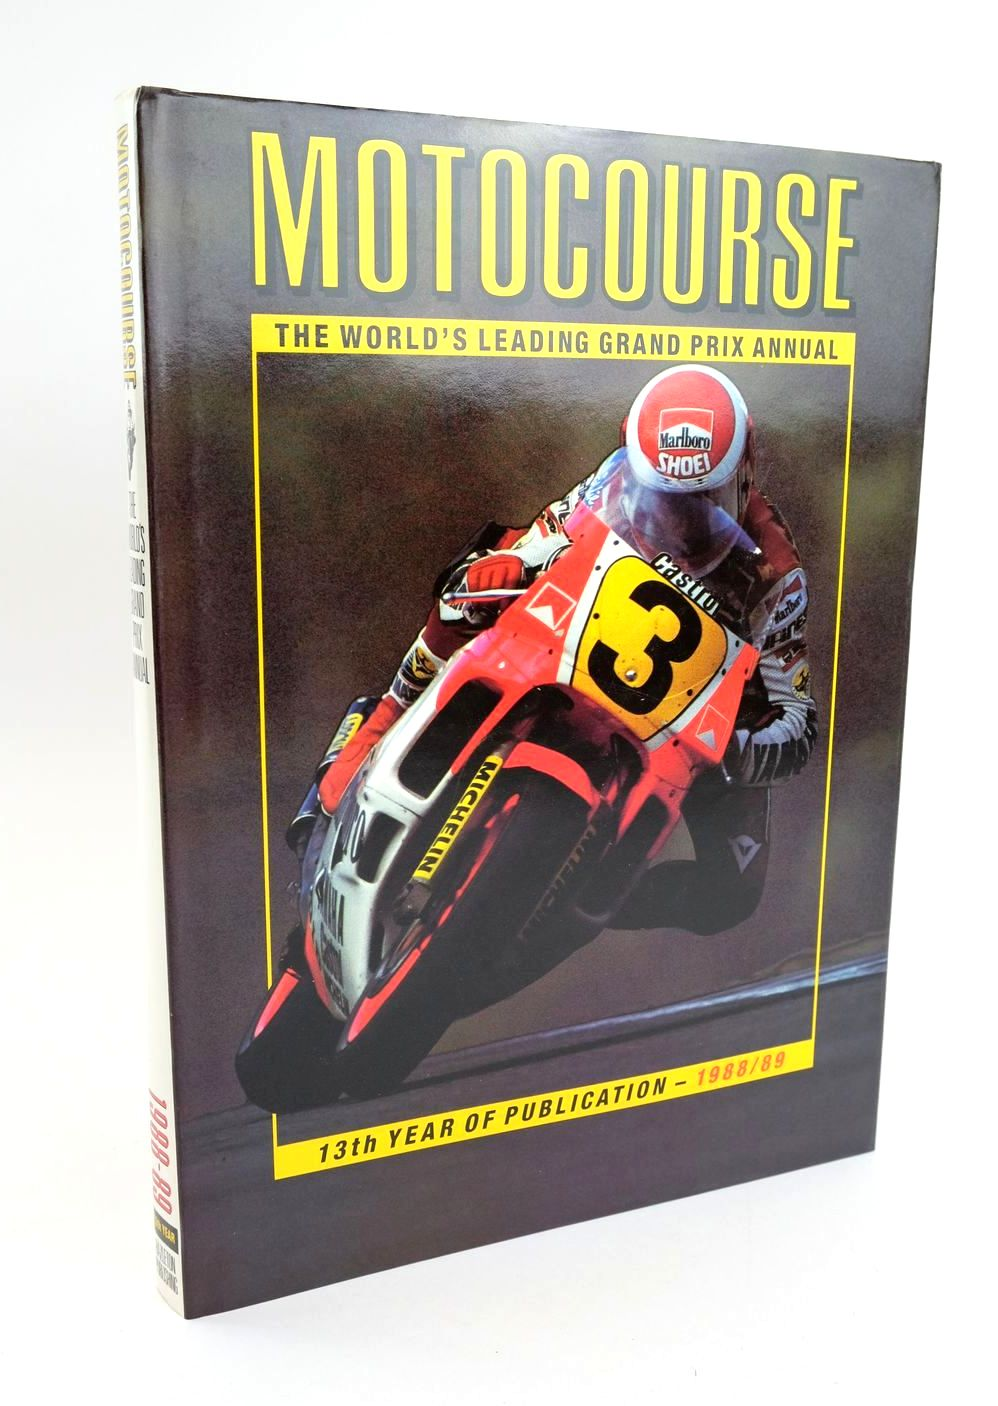 Photo of MOTOCOURSE 1988-89 published by Hazleton Publishing (STOCK CODE: 1319237)  for sale by Stella & Rose's Books